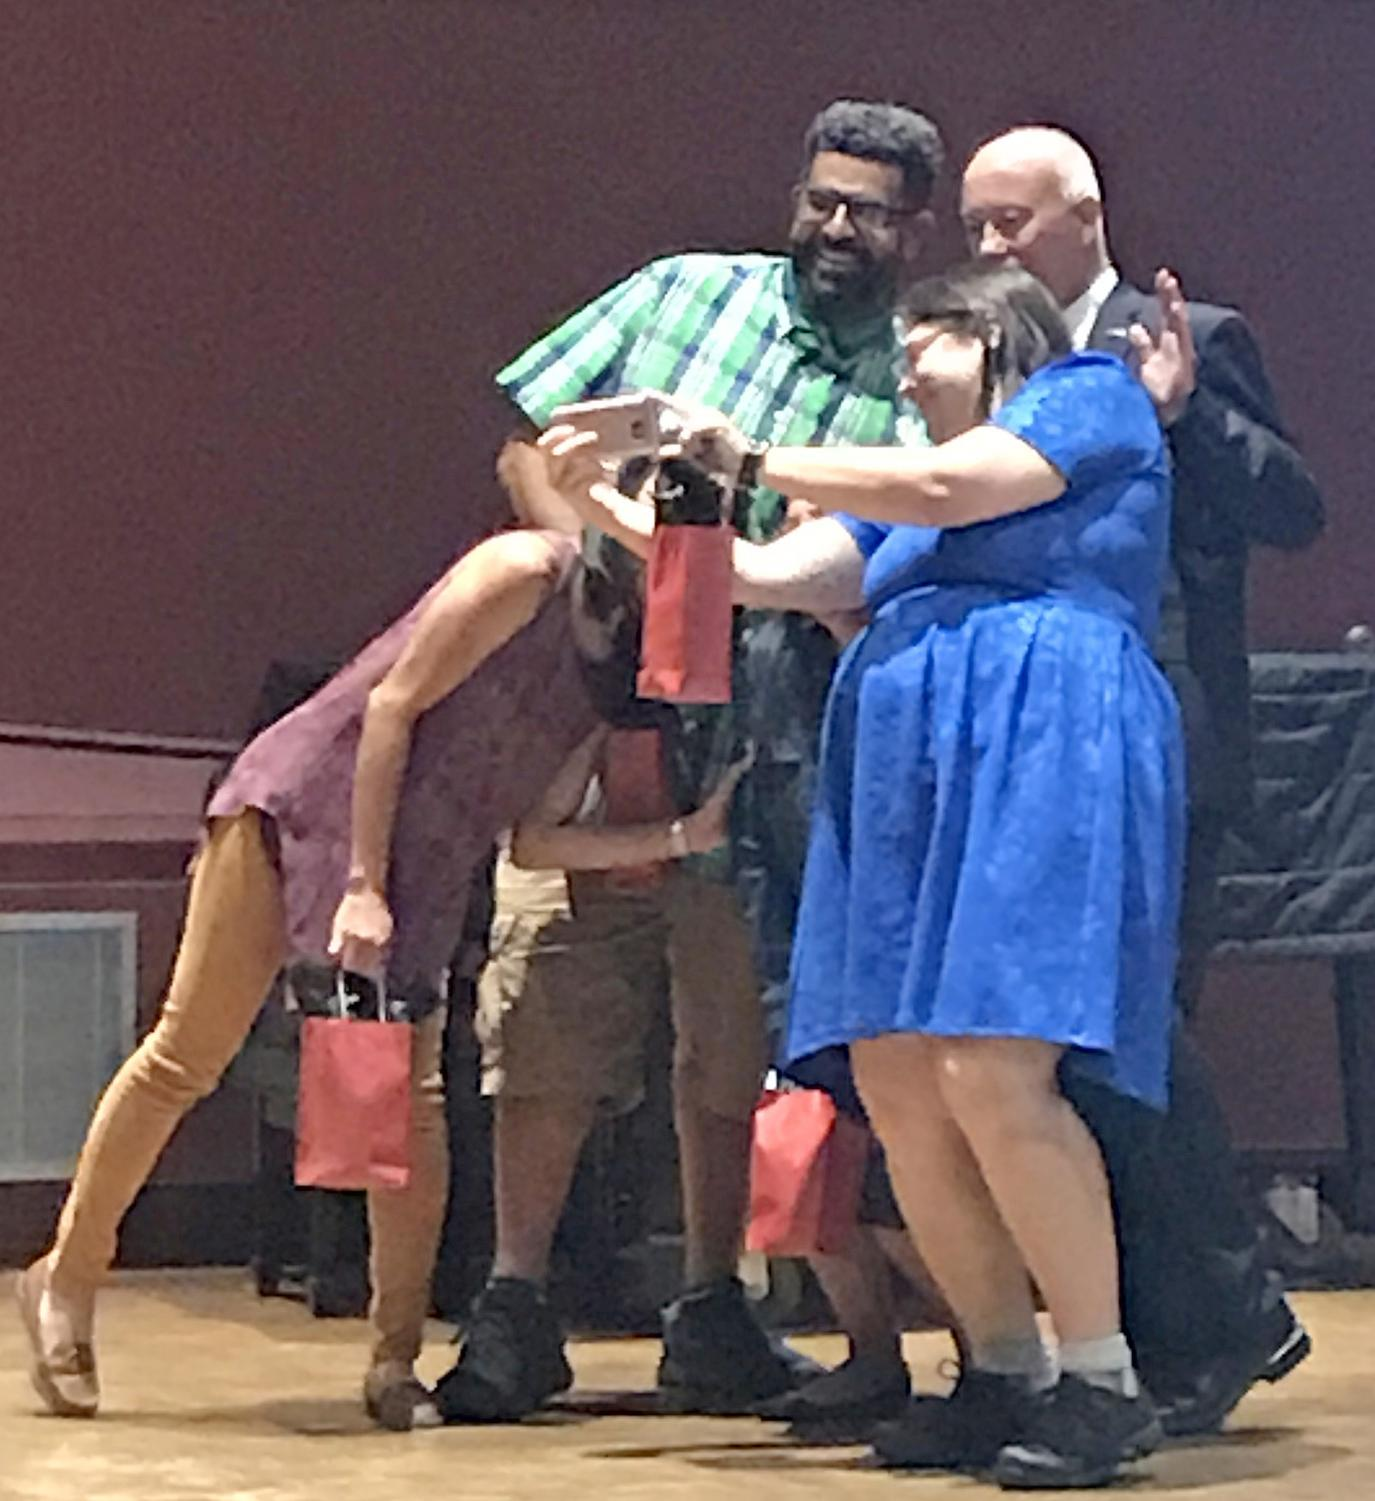 President Bob Kratochvil poses for a selfie with George Olgin, Adrianna Simone and Girlie Sison during LMC's Opening Day gathering in the Recital Hall Aug. 23.